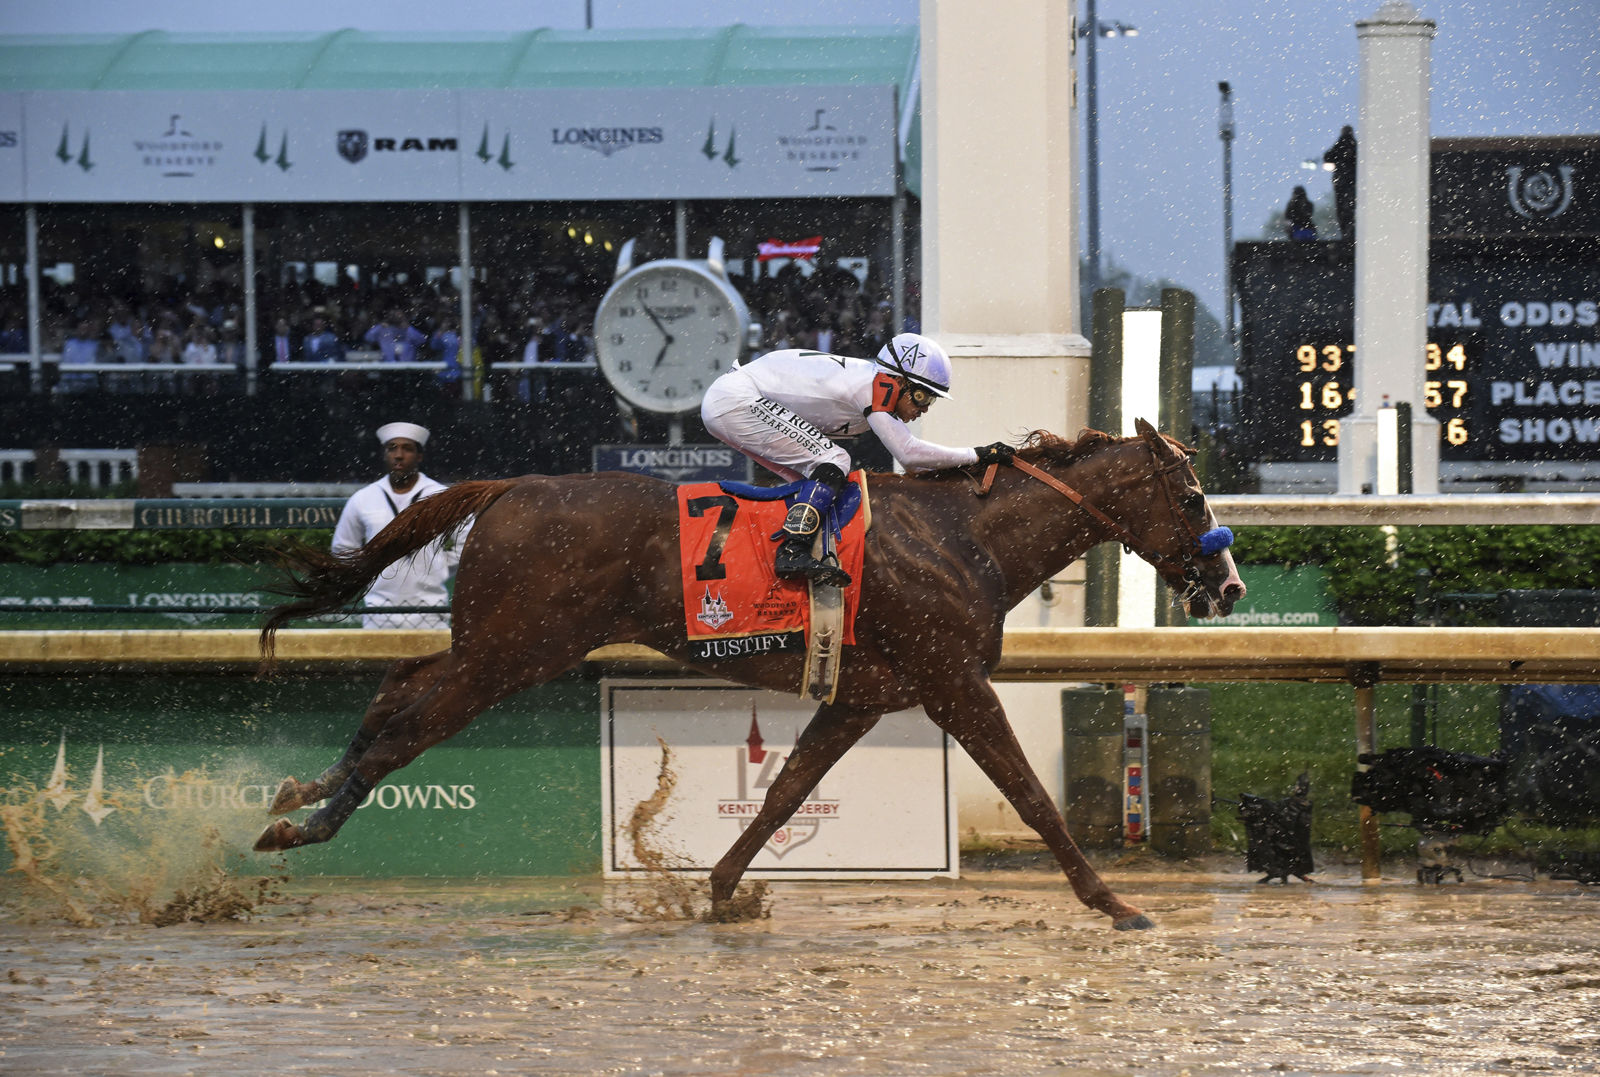 IMAGE DISTRIBUTED FOR LONGINES - Justify, ridden by jockey Mike Smith, wins the 144th Kentucky Derby, the wettest in history, on Saturday, May 5, 2018, at Churchill Downs in Louisville, Ky. Longines, the Swiss watch manufacturer known for its luxury timepieces, is the Official Watch and Timekeeper of the 144th annual Kentucky Derby. (Photo by Diane Bondareff/Invision for Longines/AP Images)